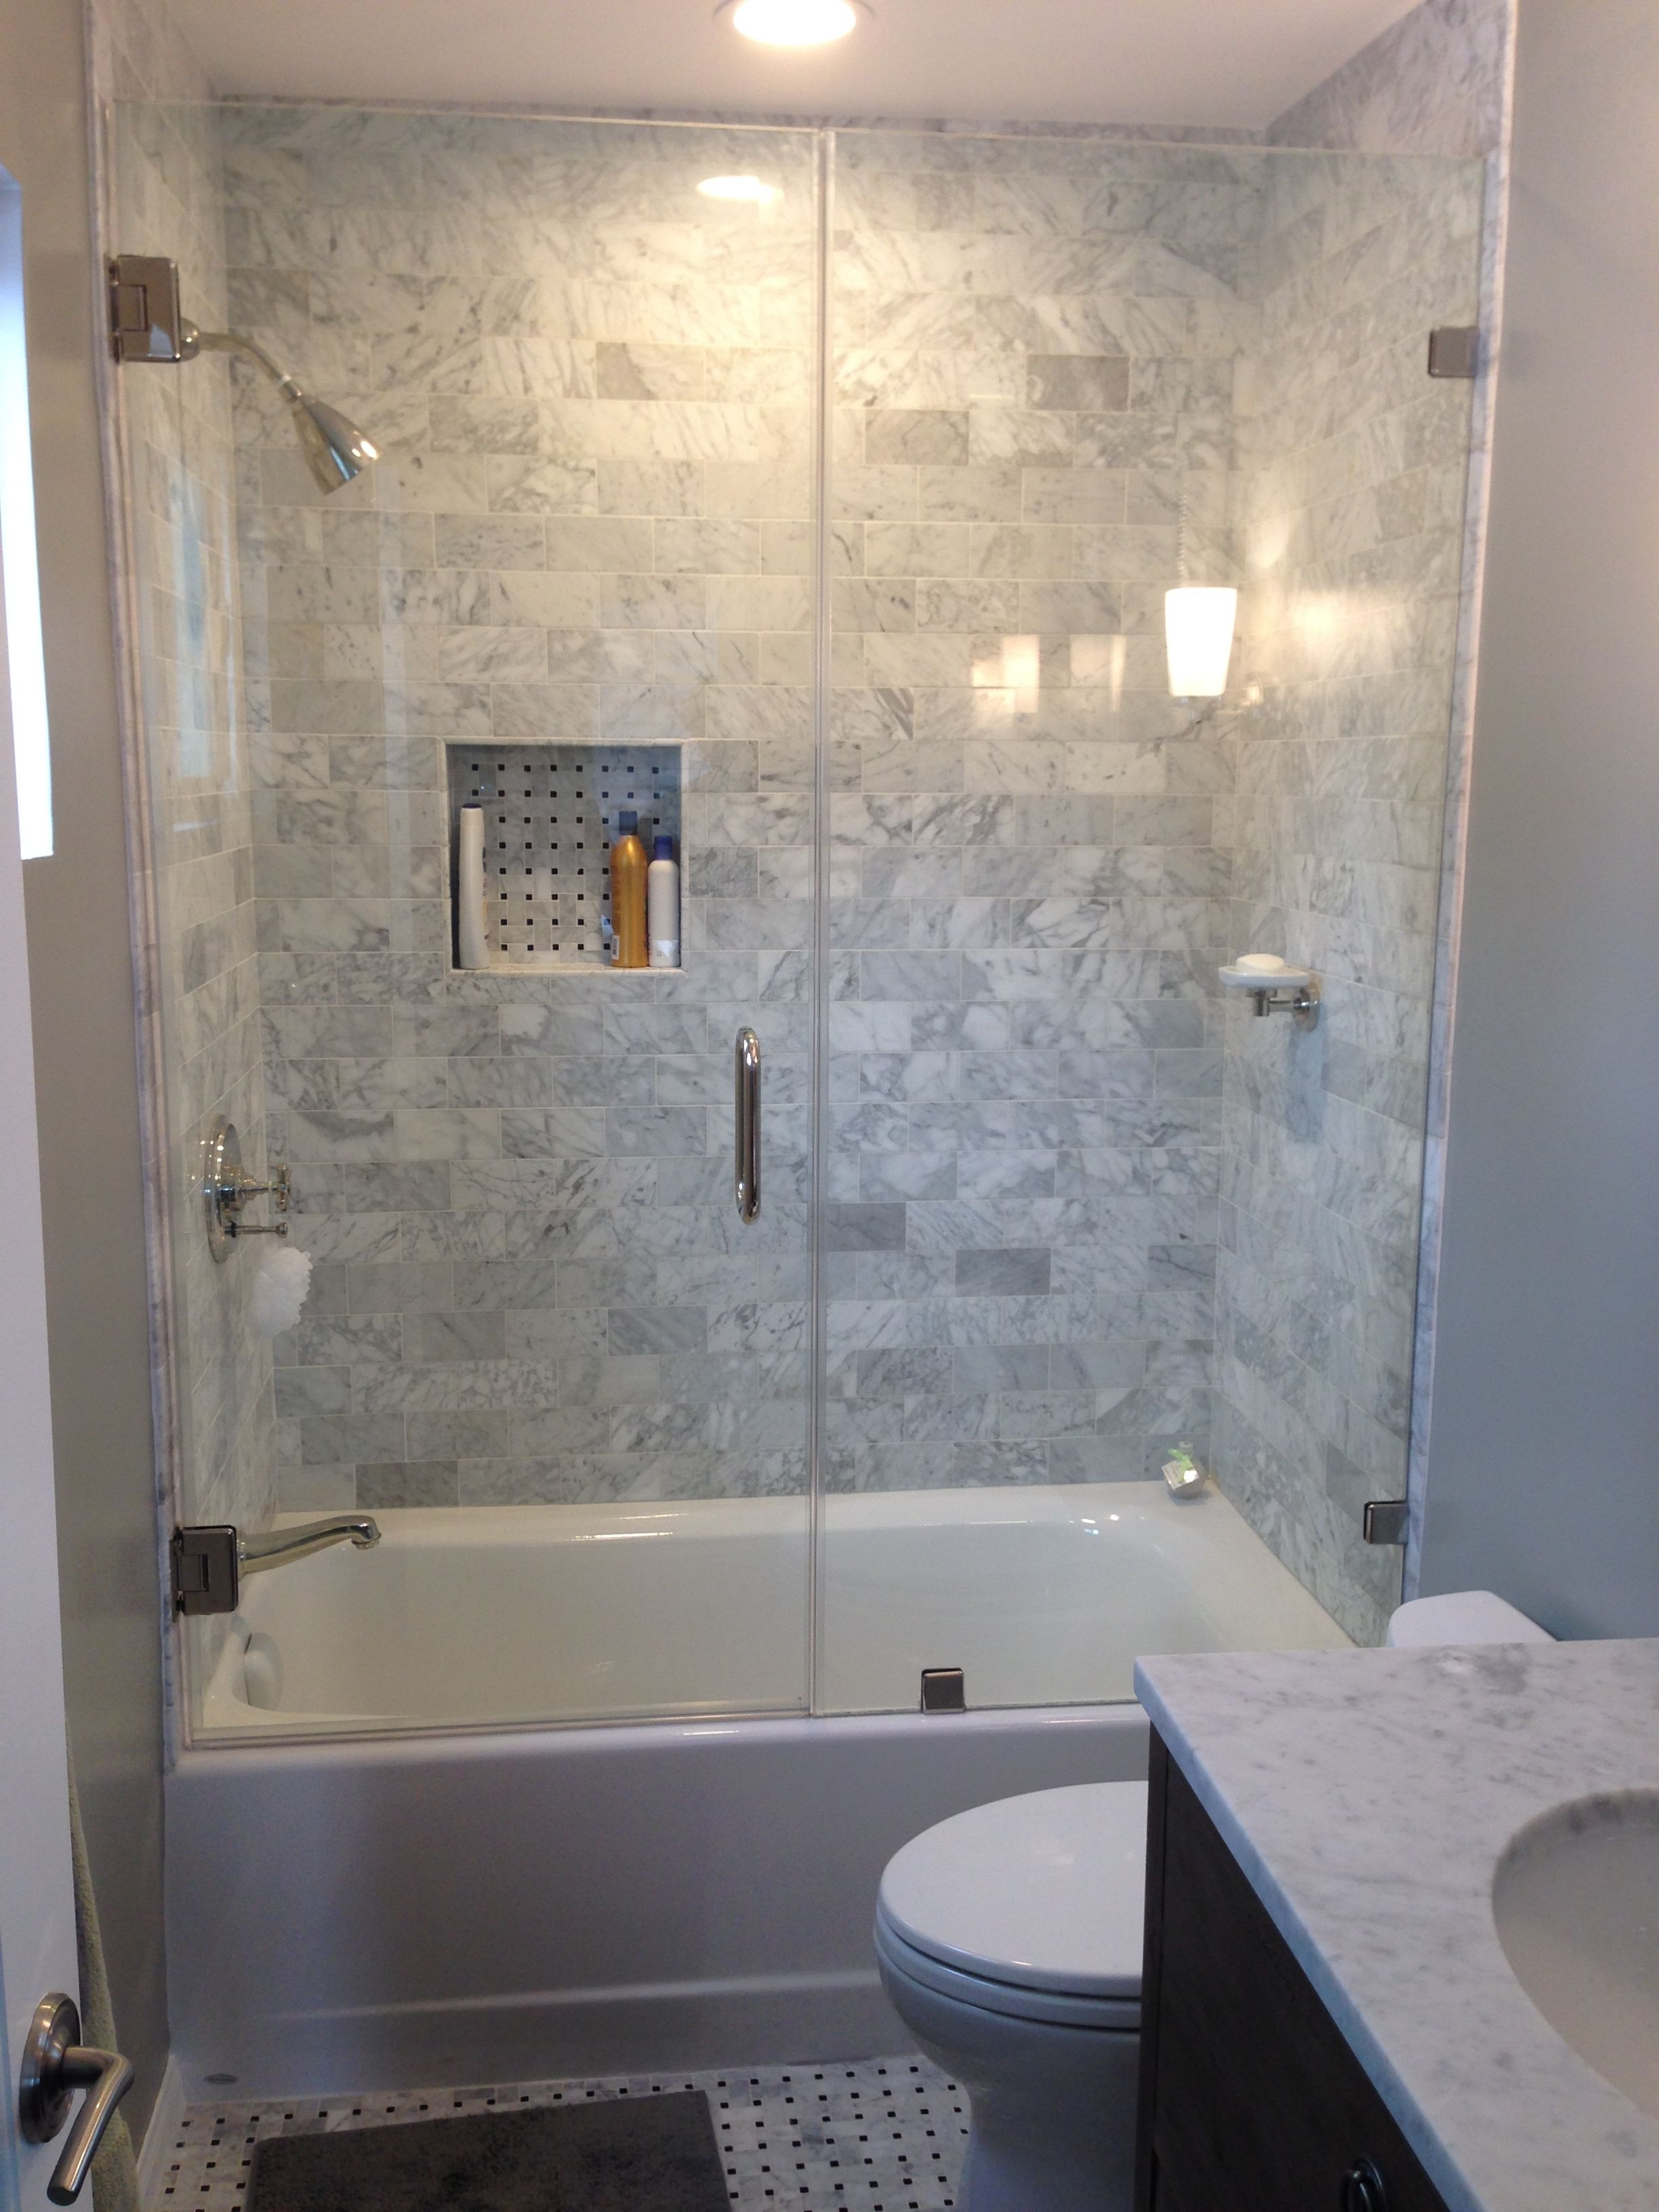 Bathroom Bathroom White Corner Tub Shower Combo With Glass Door Near White Toilet B Small Bathroom With Shower Bathroom Design Small Bathroom Remodel Designs